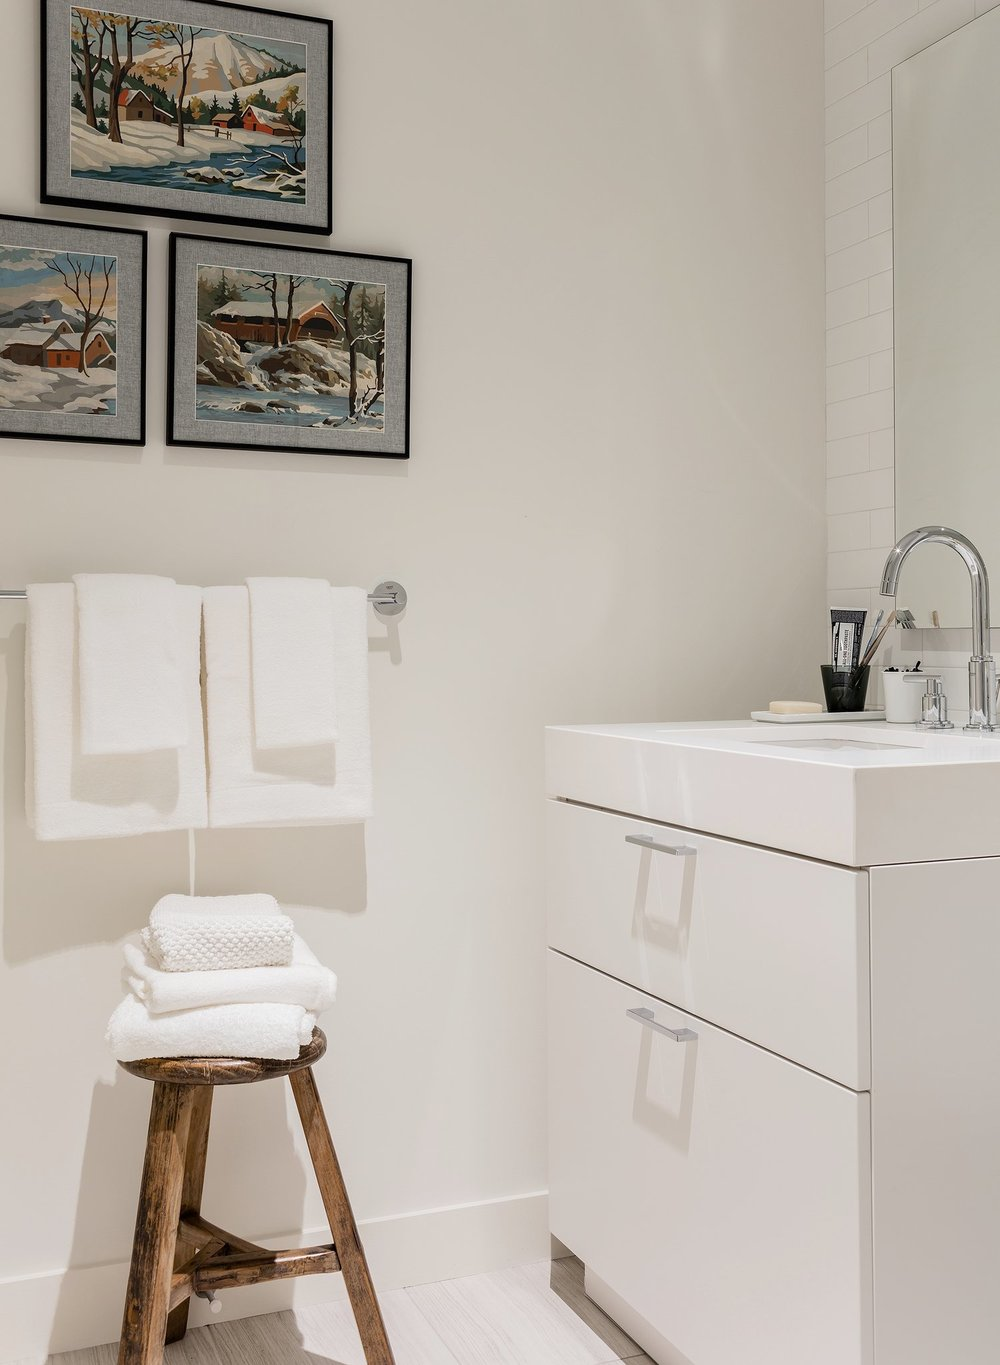 pier-4-model-guest-bathroom-hudson-interior-designs.jpg